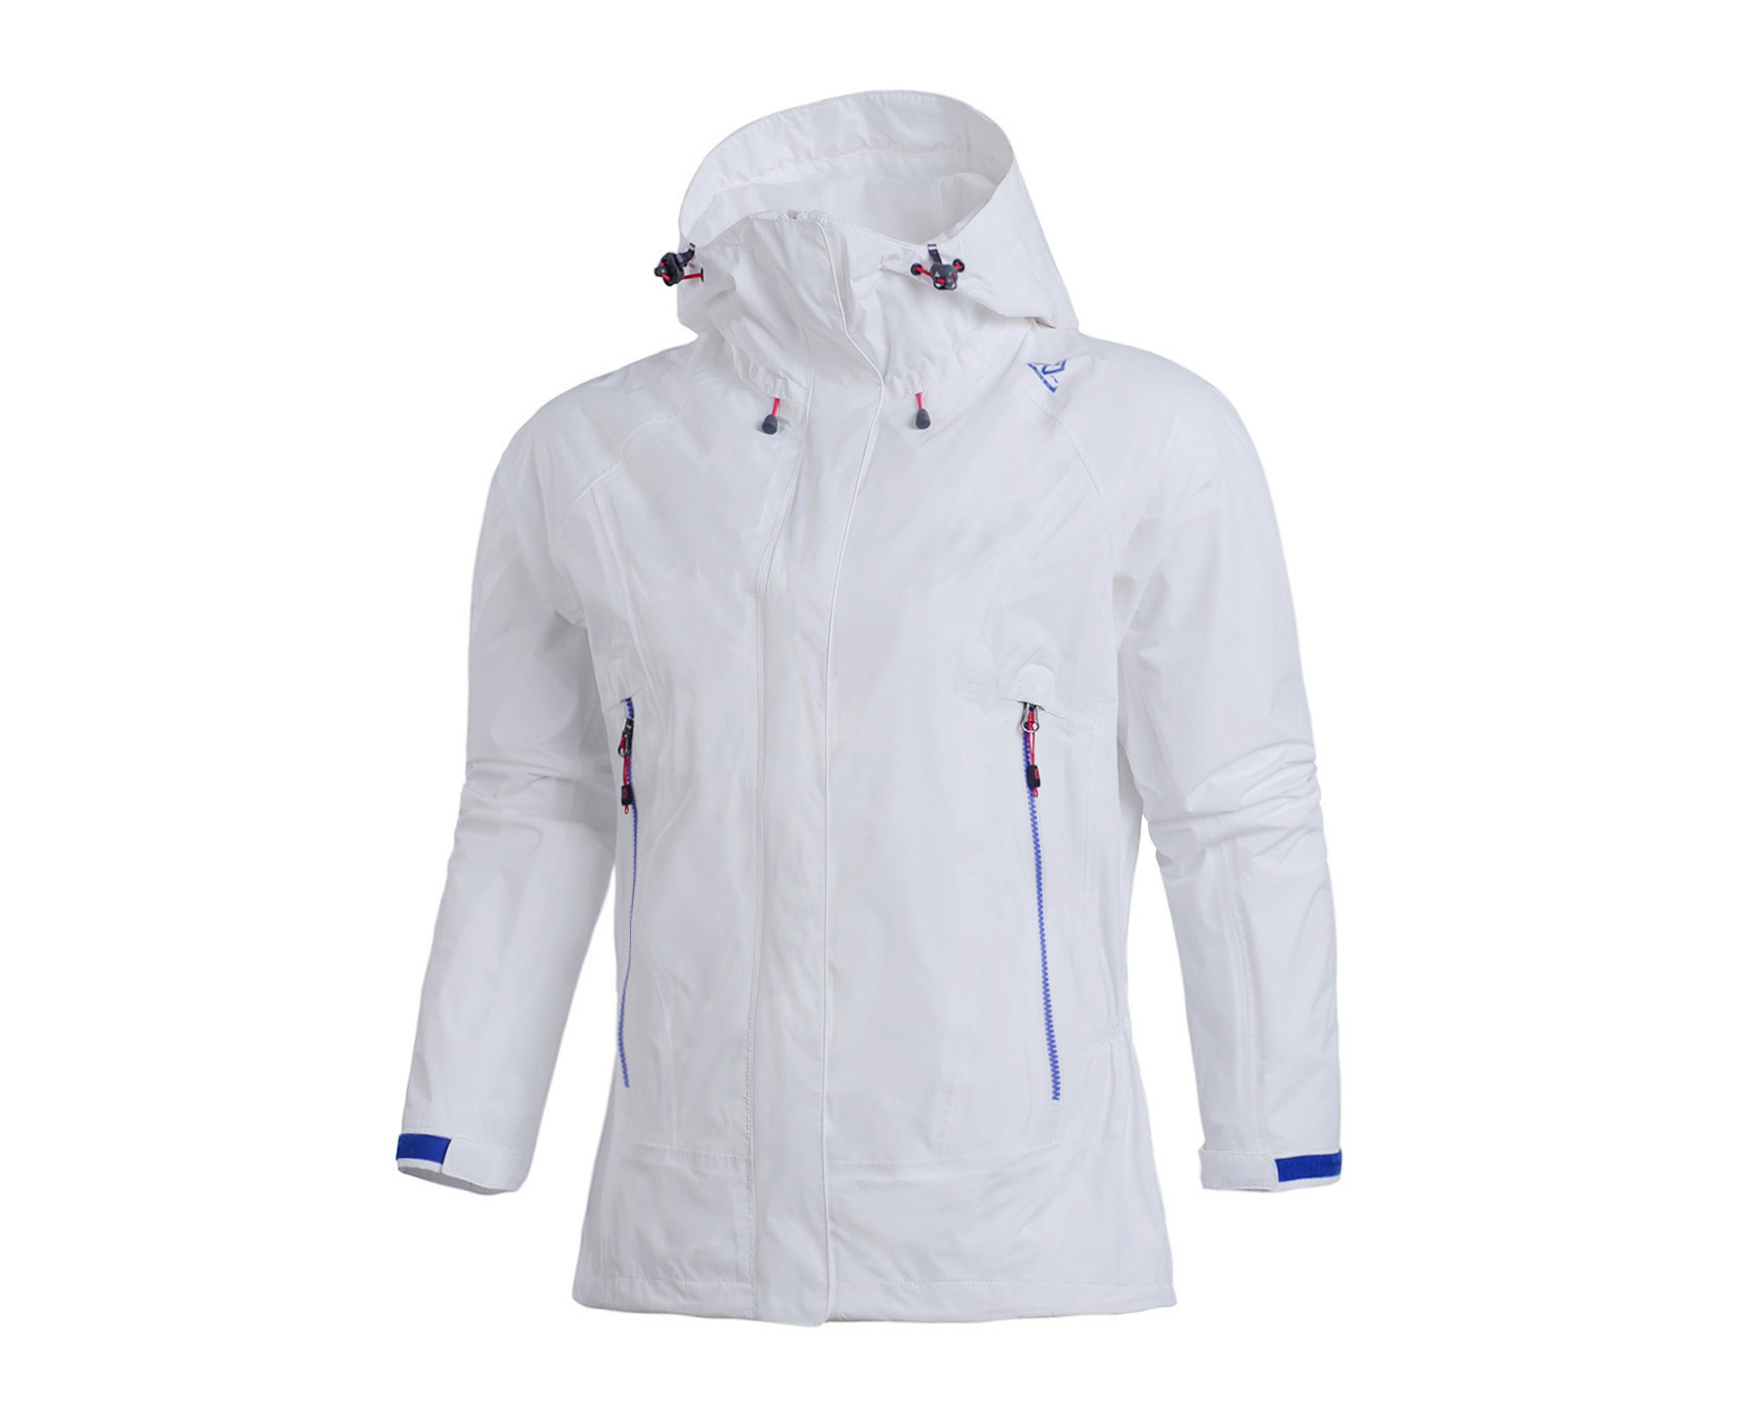 Online outdoor clothing